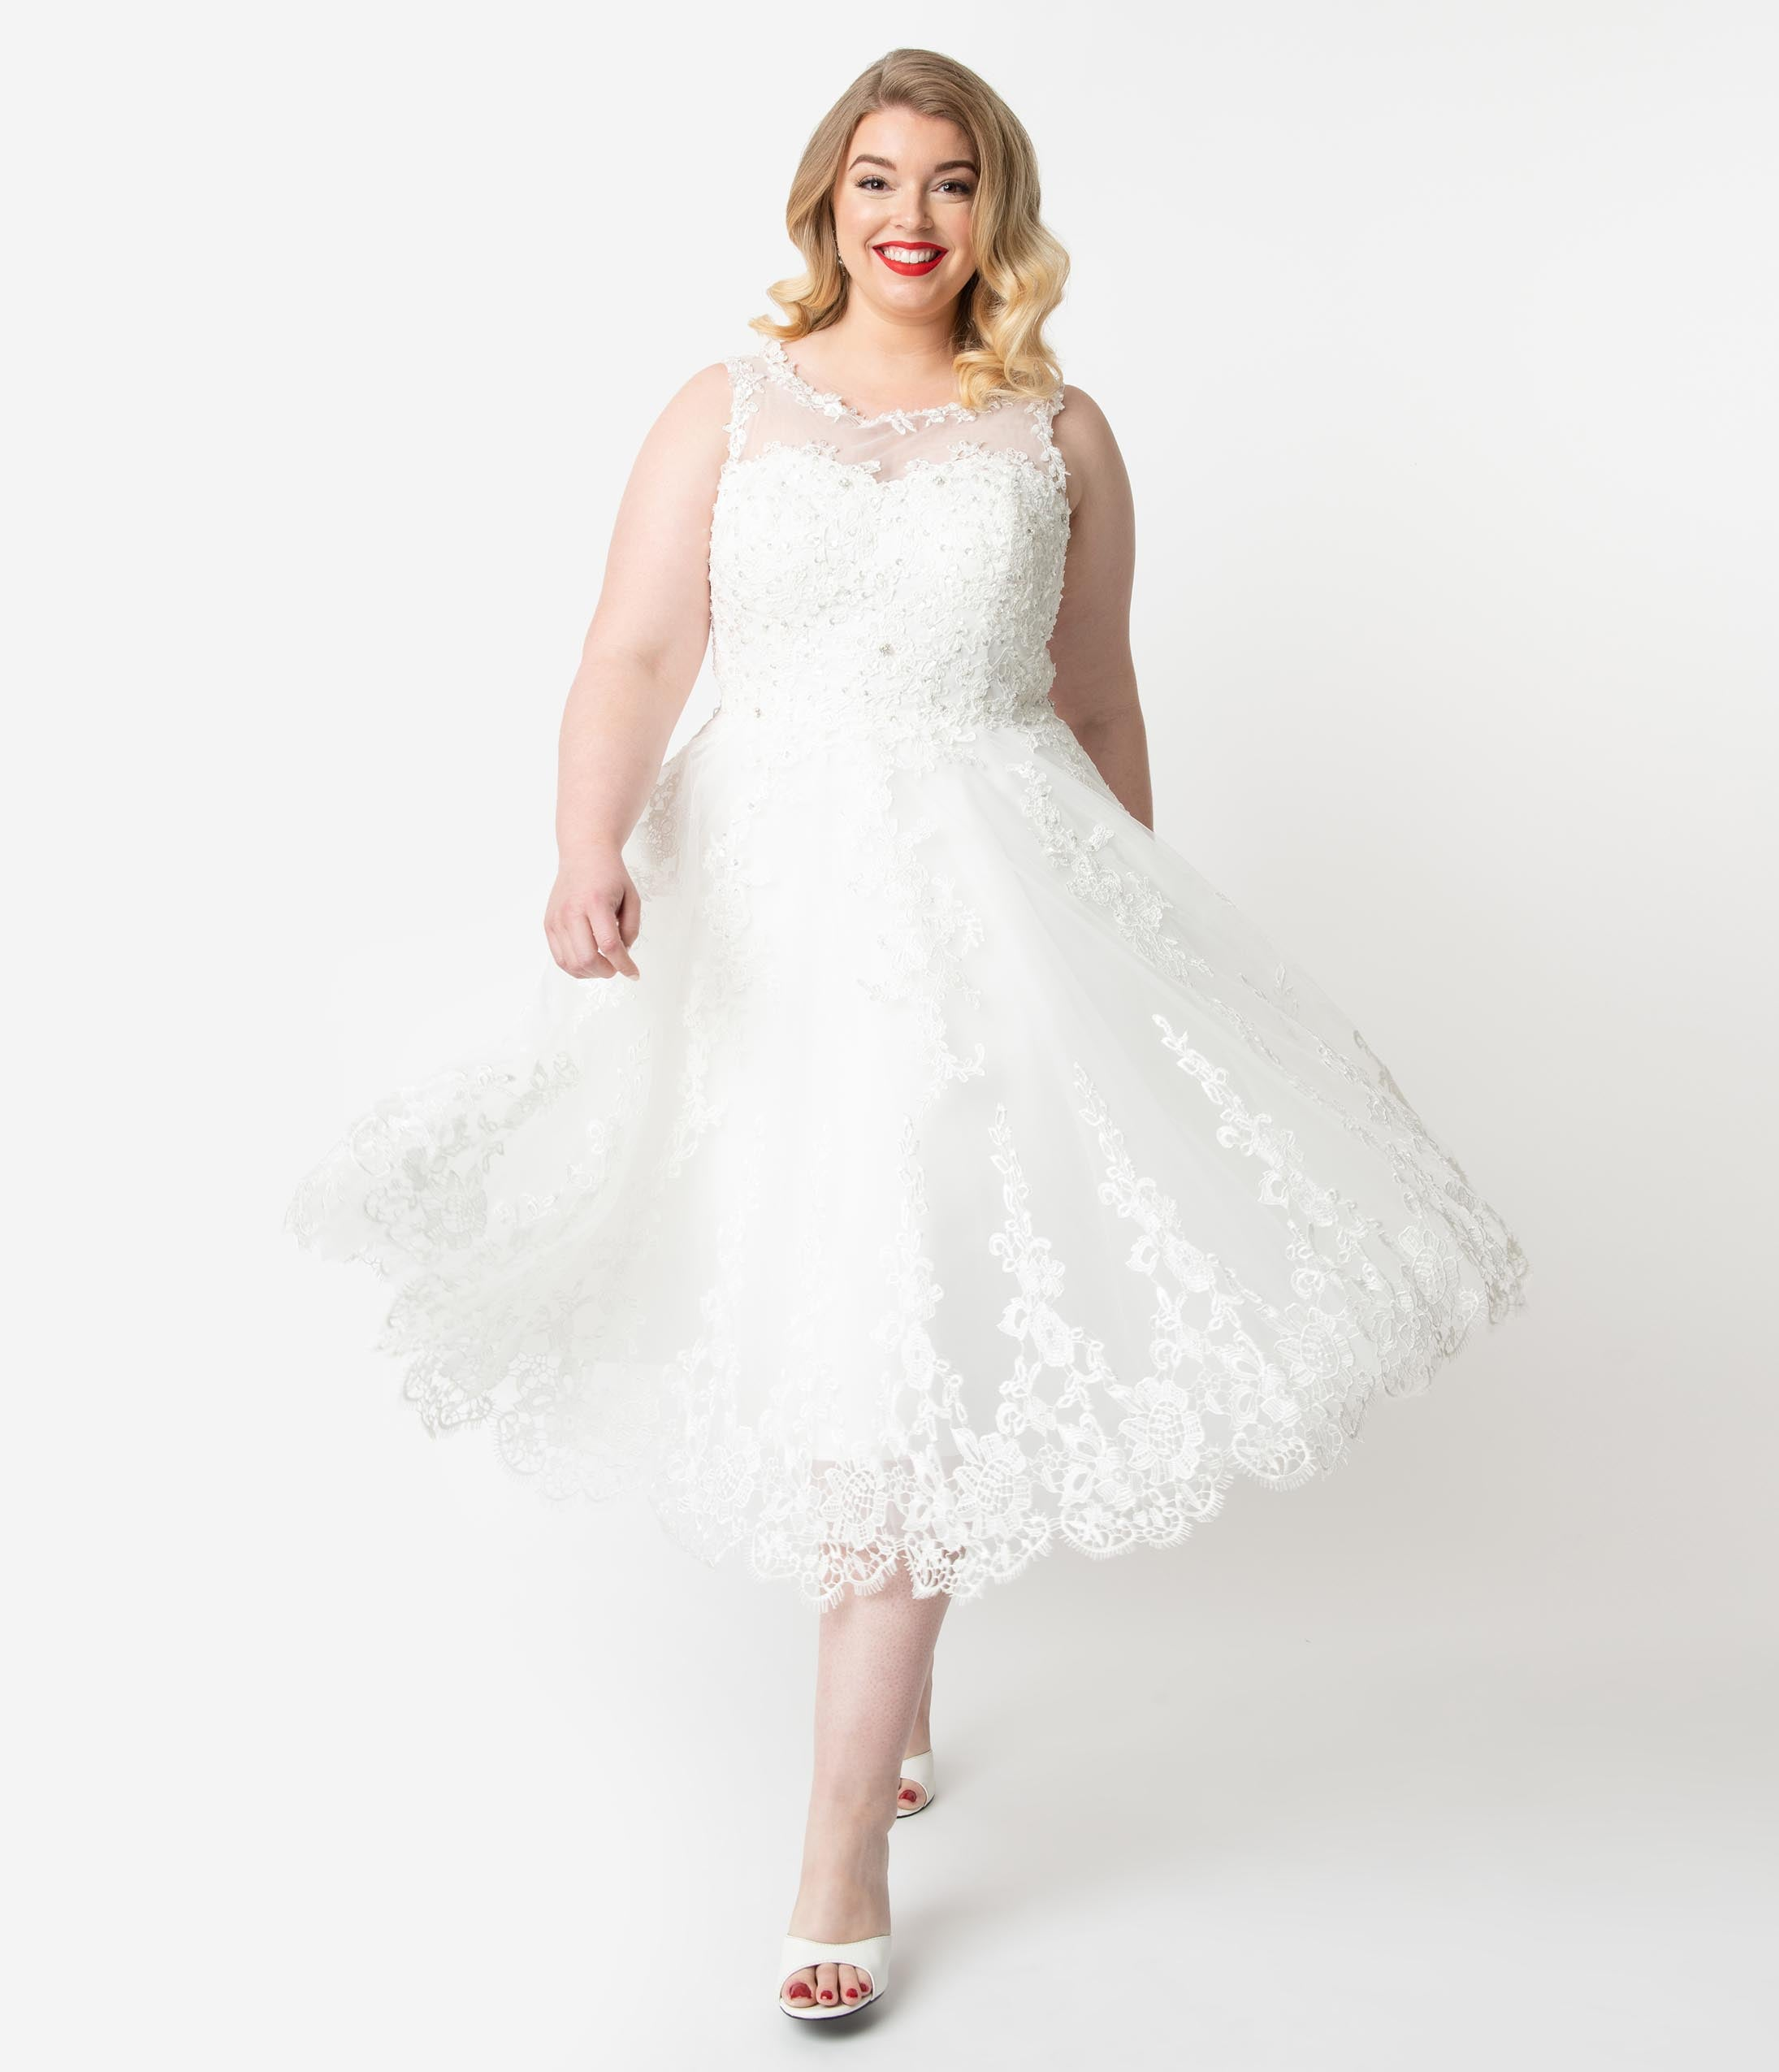 60s Wedding Dresses | 70s Wedding Dresses Unique Vintage Plus Size 1950S Ivory Lace  Tulle Riviera Bridal Dress $228.00 AT vintagedancer.com